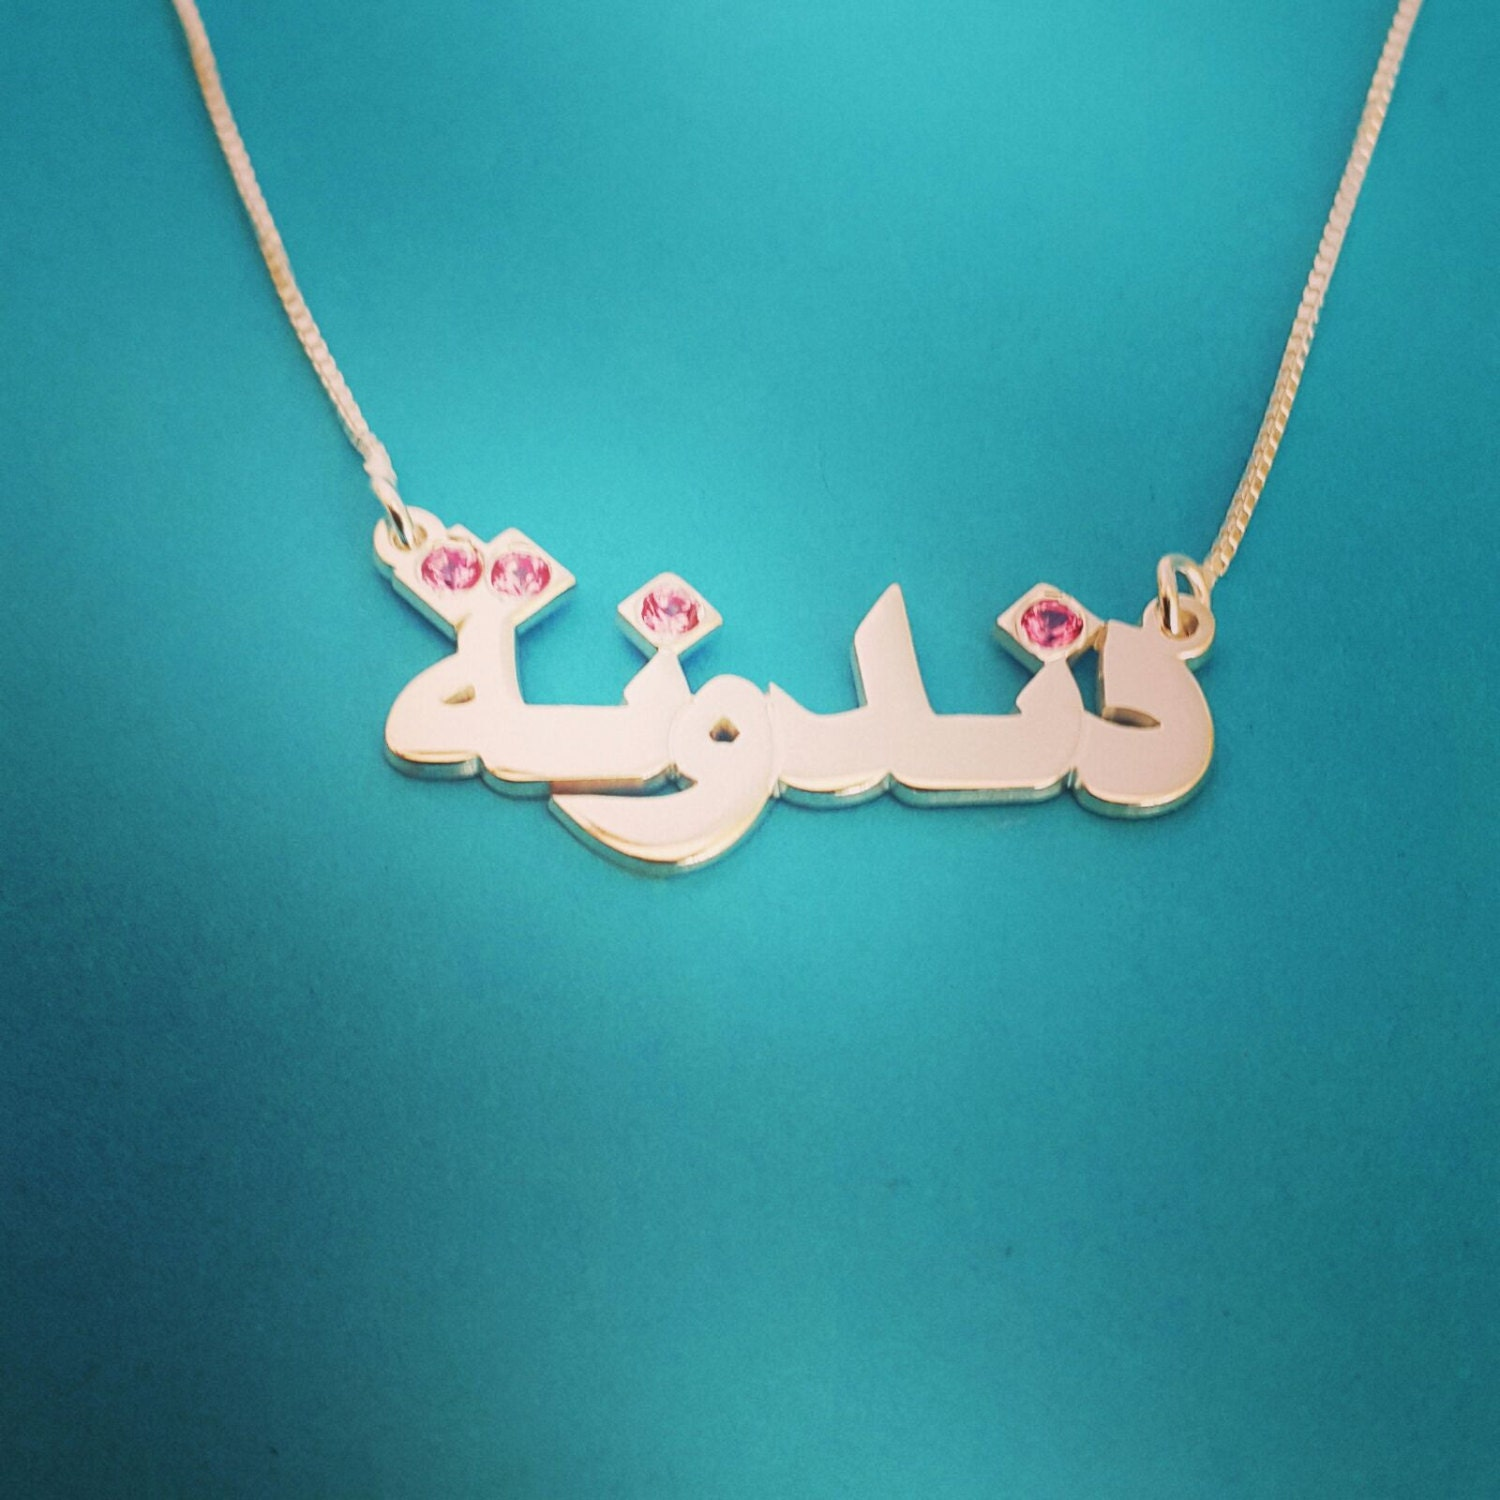 names pendants s designs name chains designer unique explore in with at gold pendant children customized india your online